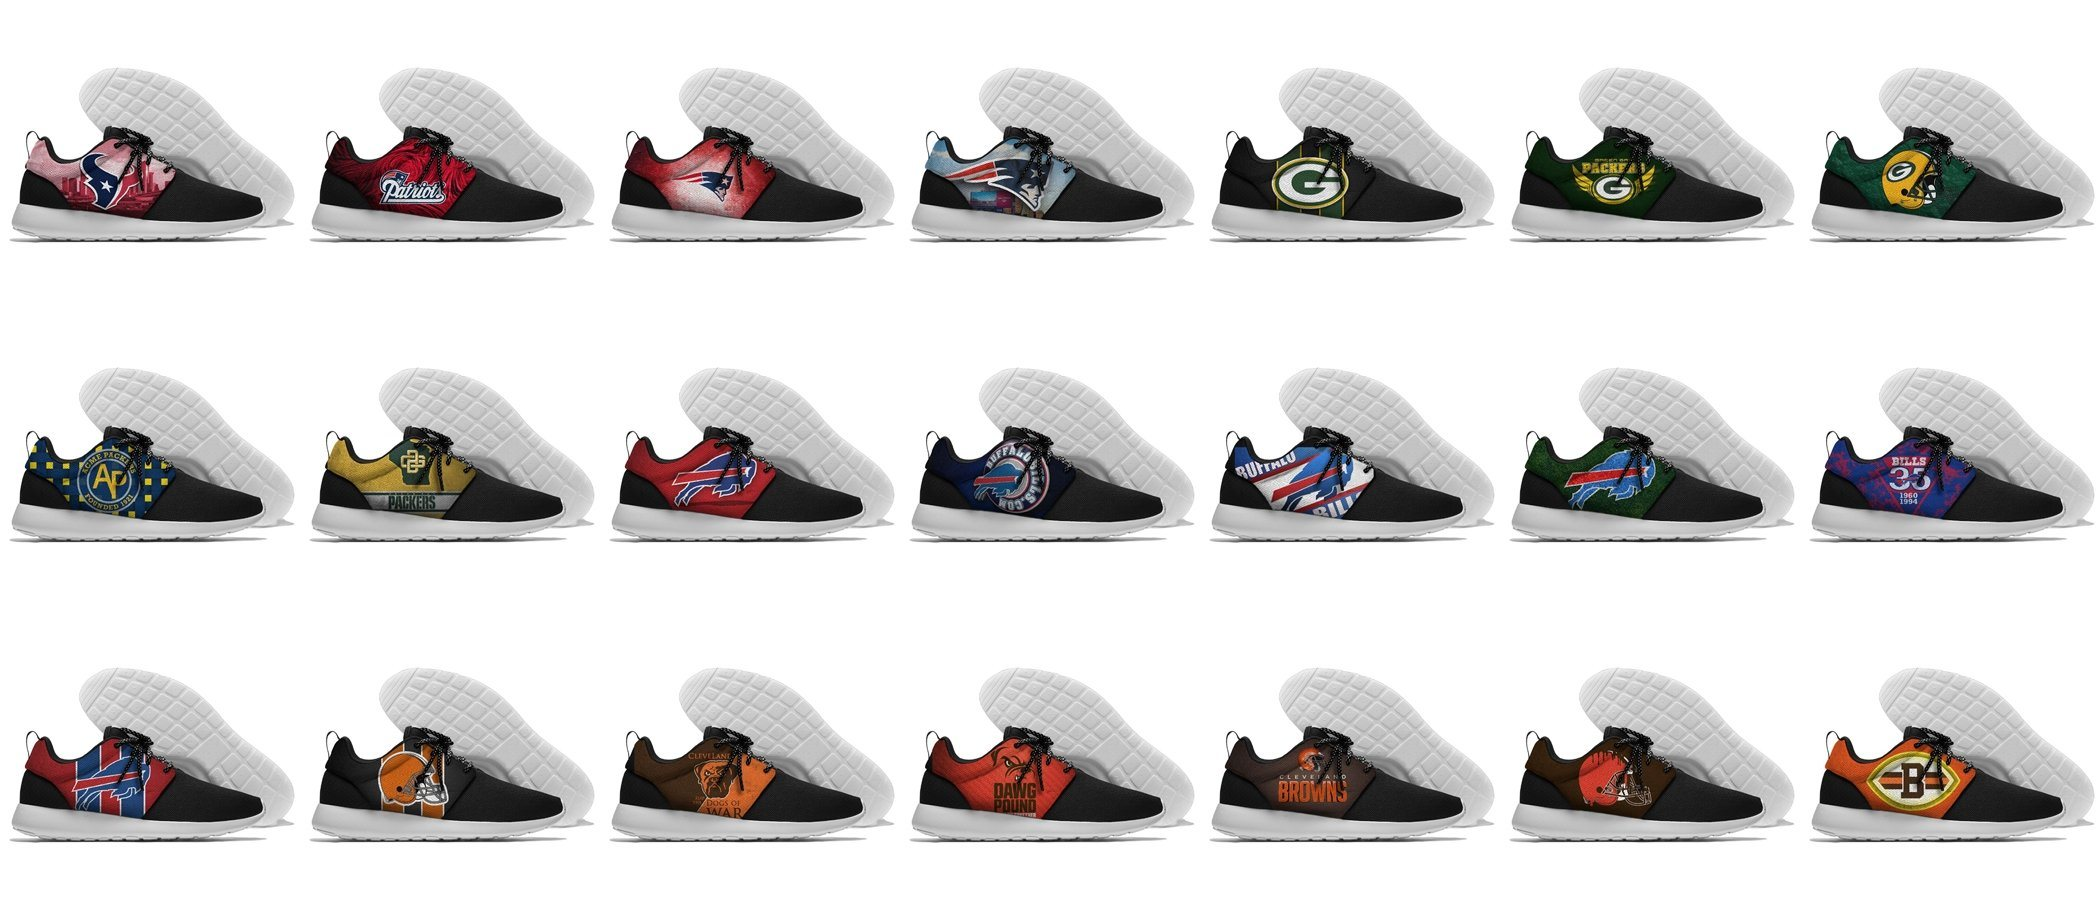 b6a37c0b21b0 China Accept Own Design-London Roshe Style Lightweight Running Sneaker Football  Shoes - China Bills Shoes